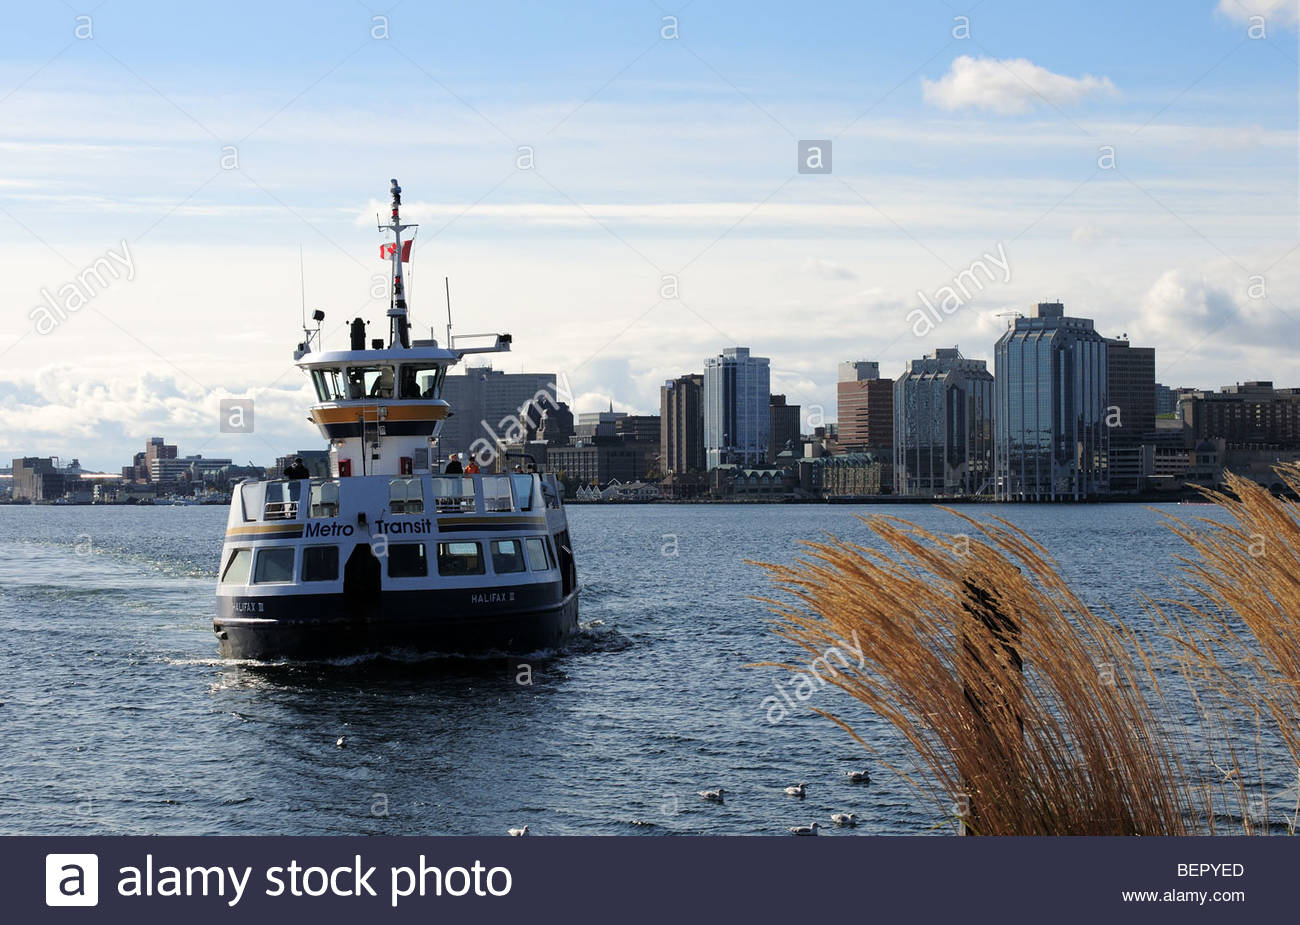 view-of-halifax-harbour-from-the-dartmouth-side-with-ferry-in-foreground-bepyed